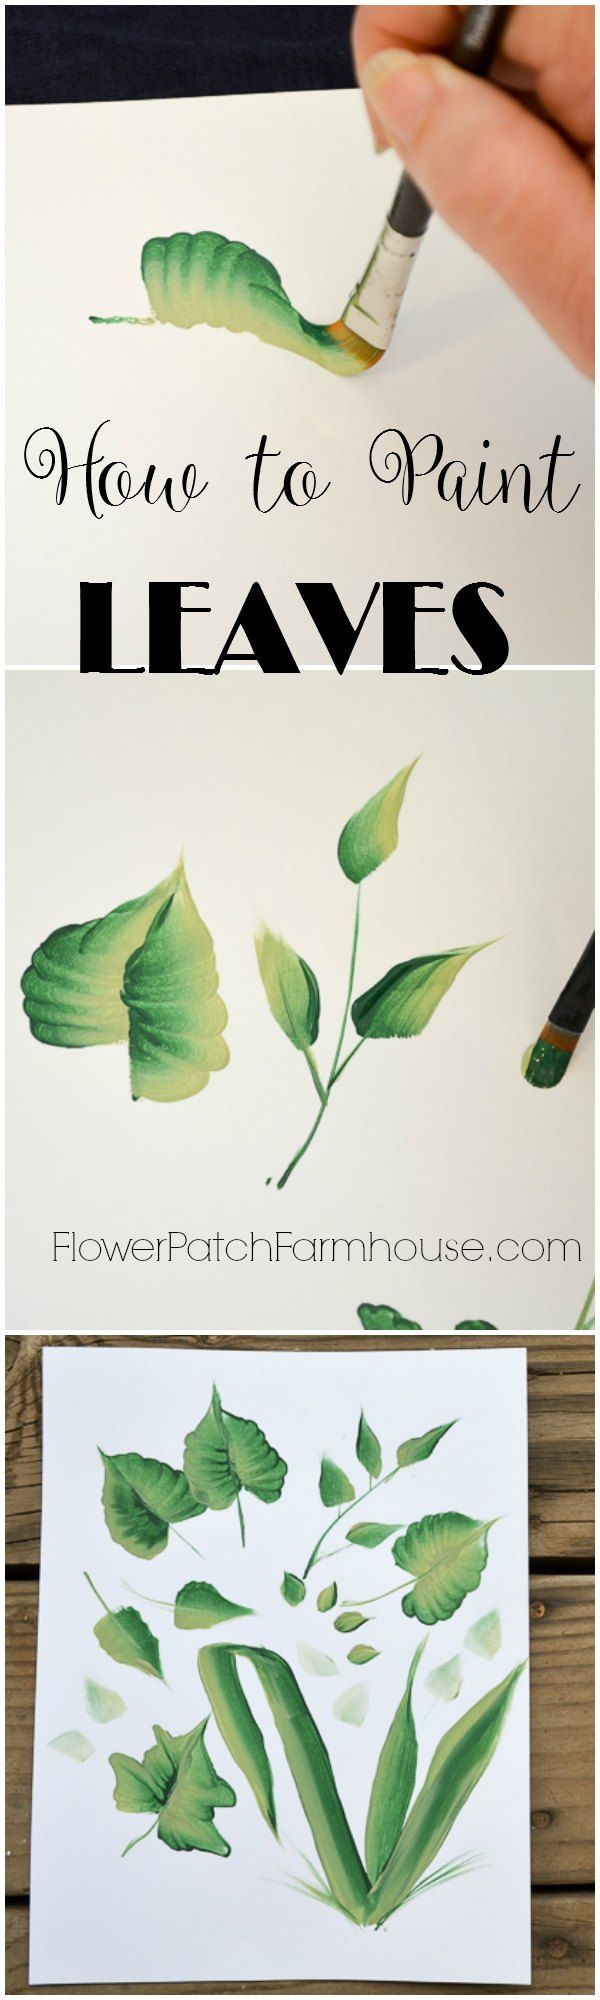 How to Paint Leaves in AcrylicsFlower Patch Farmhouse – Natural Garden Tips – DIY Creative Home – Free Art Tutorials